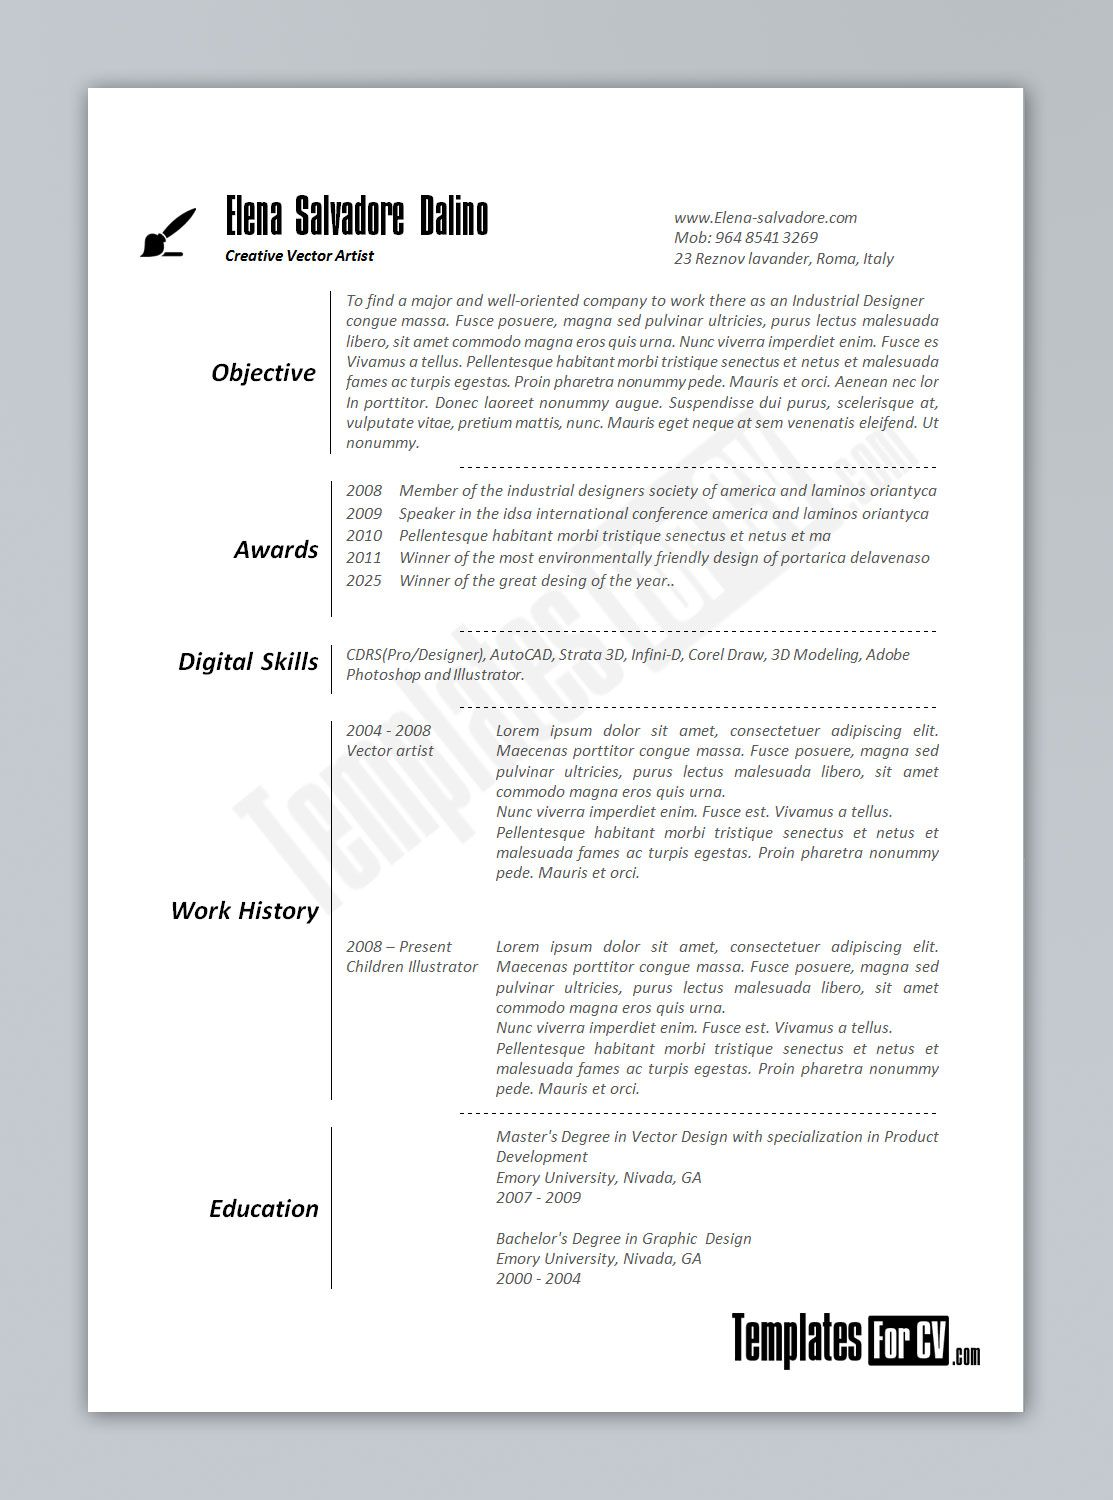 artist cv template artist cv template - Download Template Resume